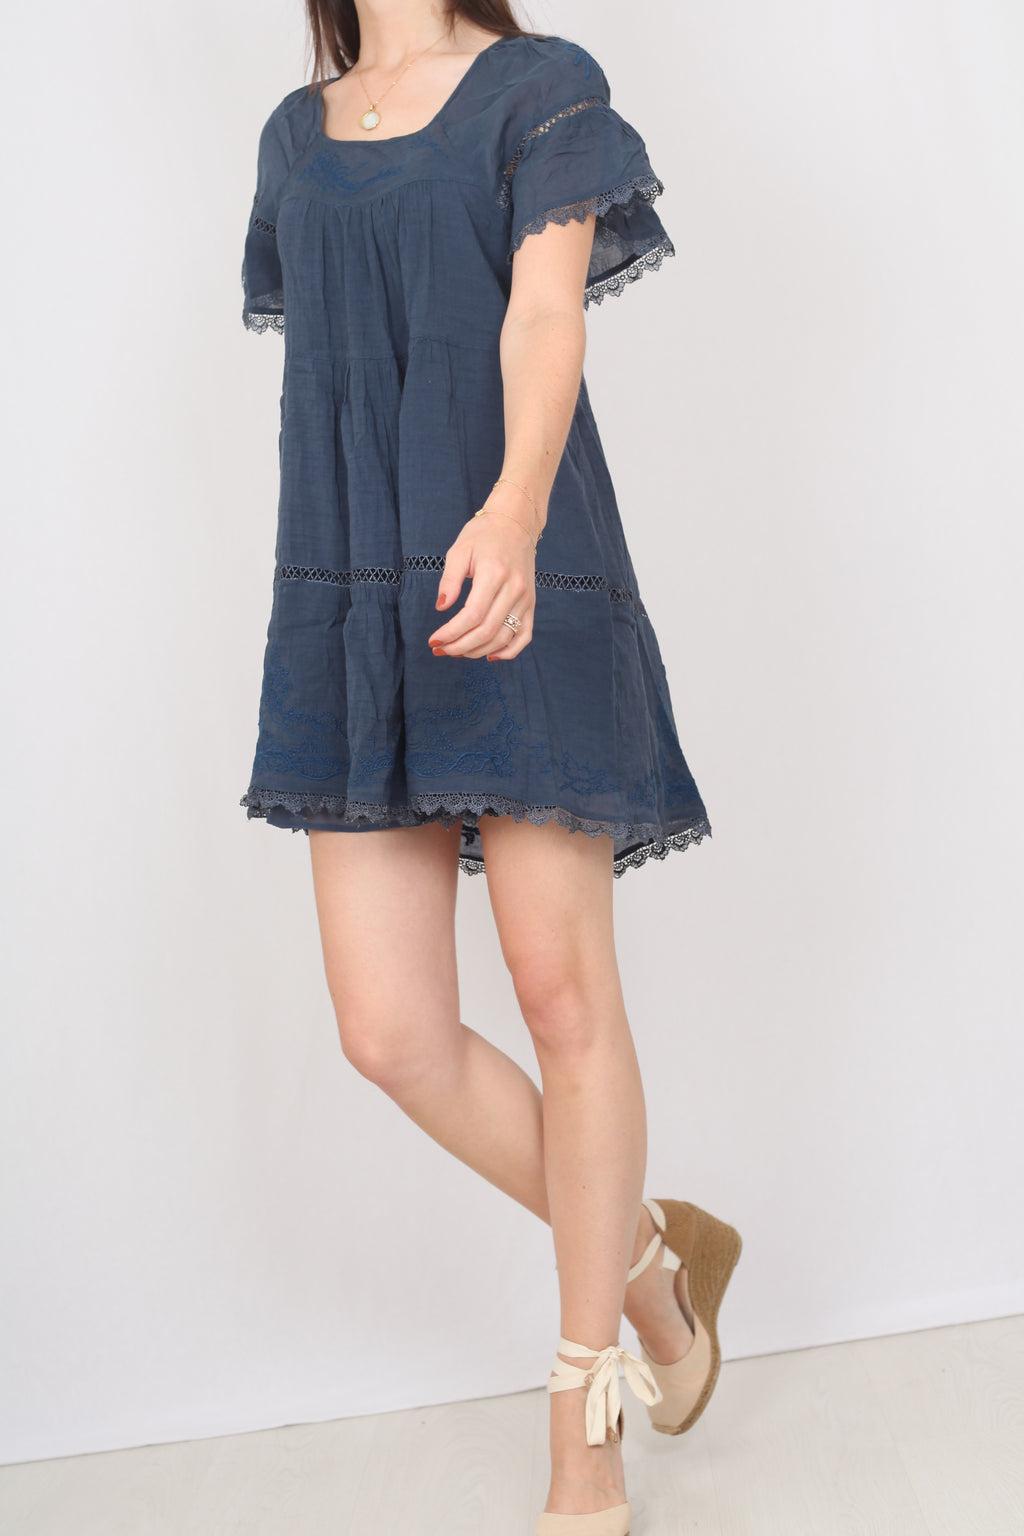 Cotton and Lace Dress - S